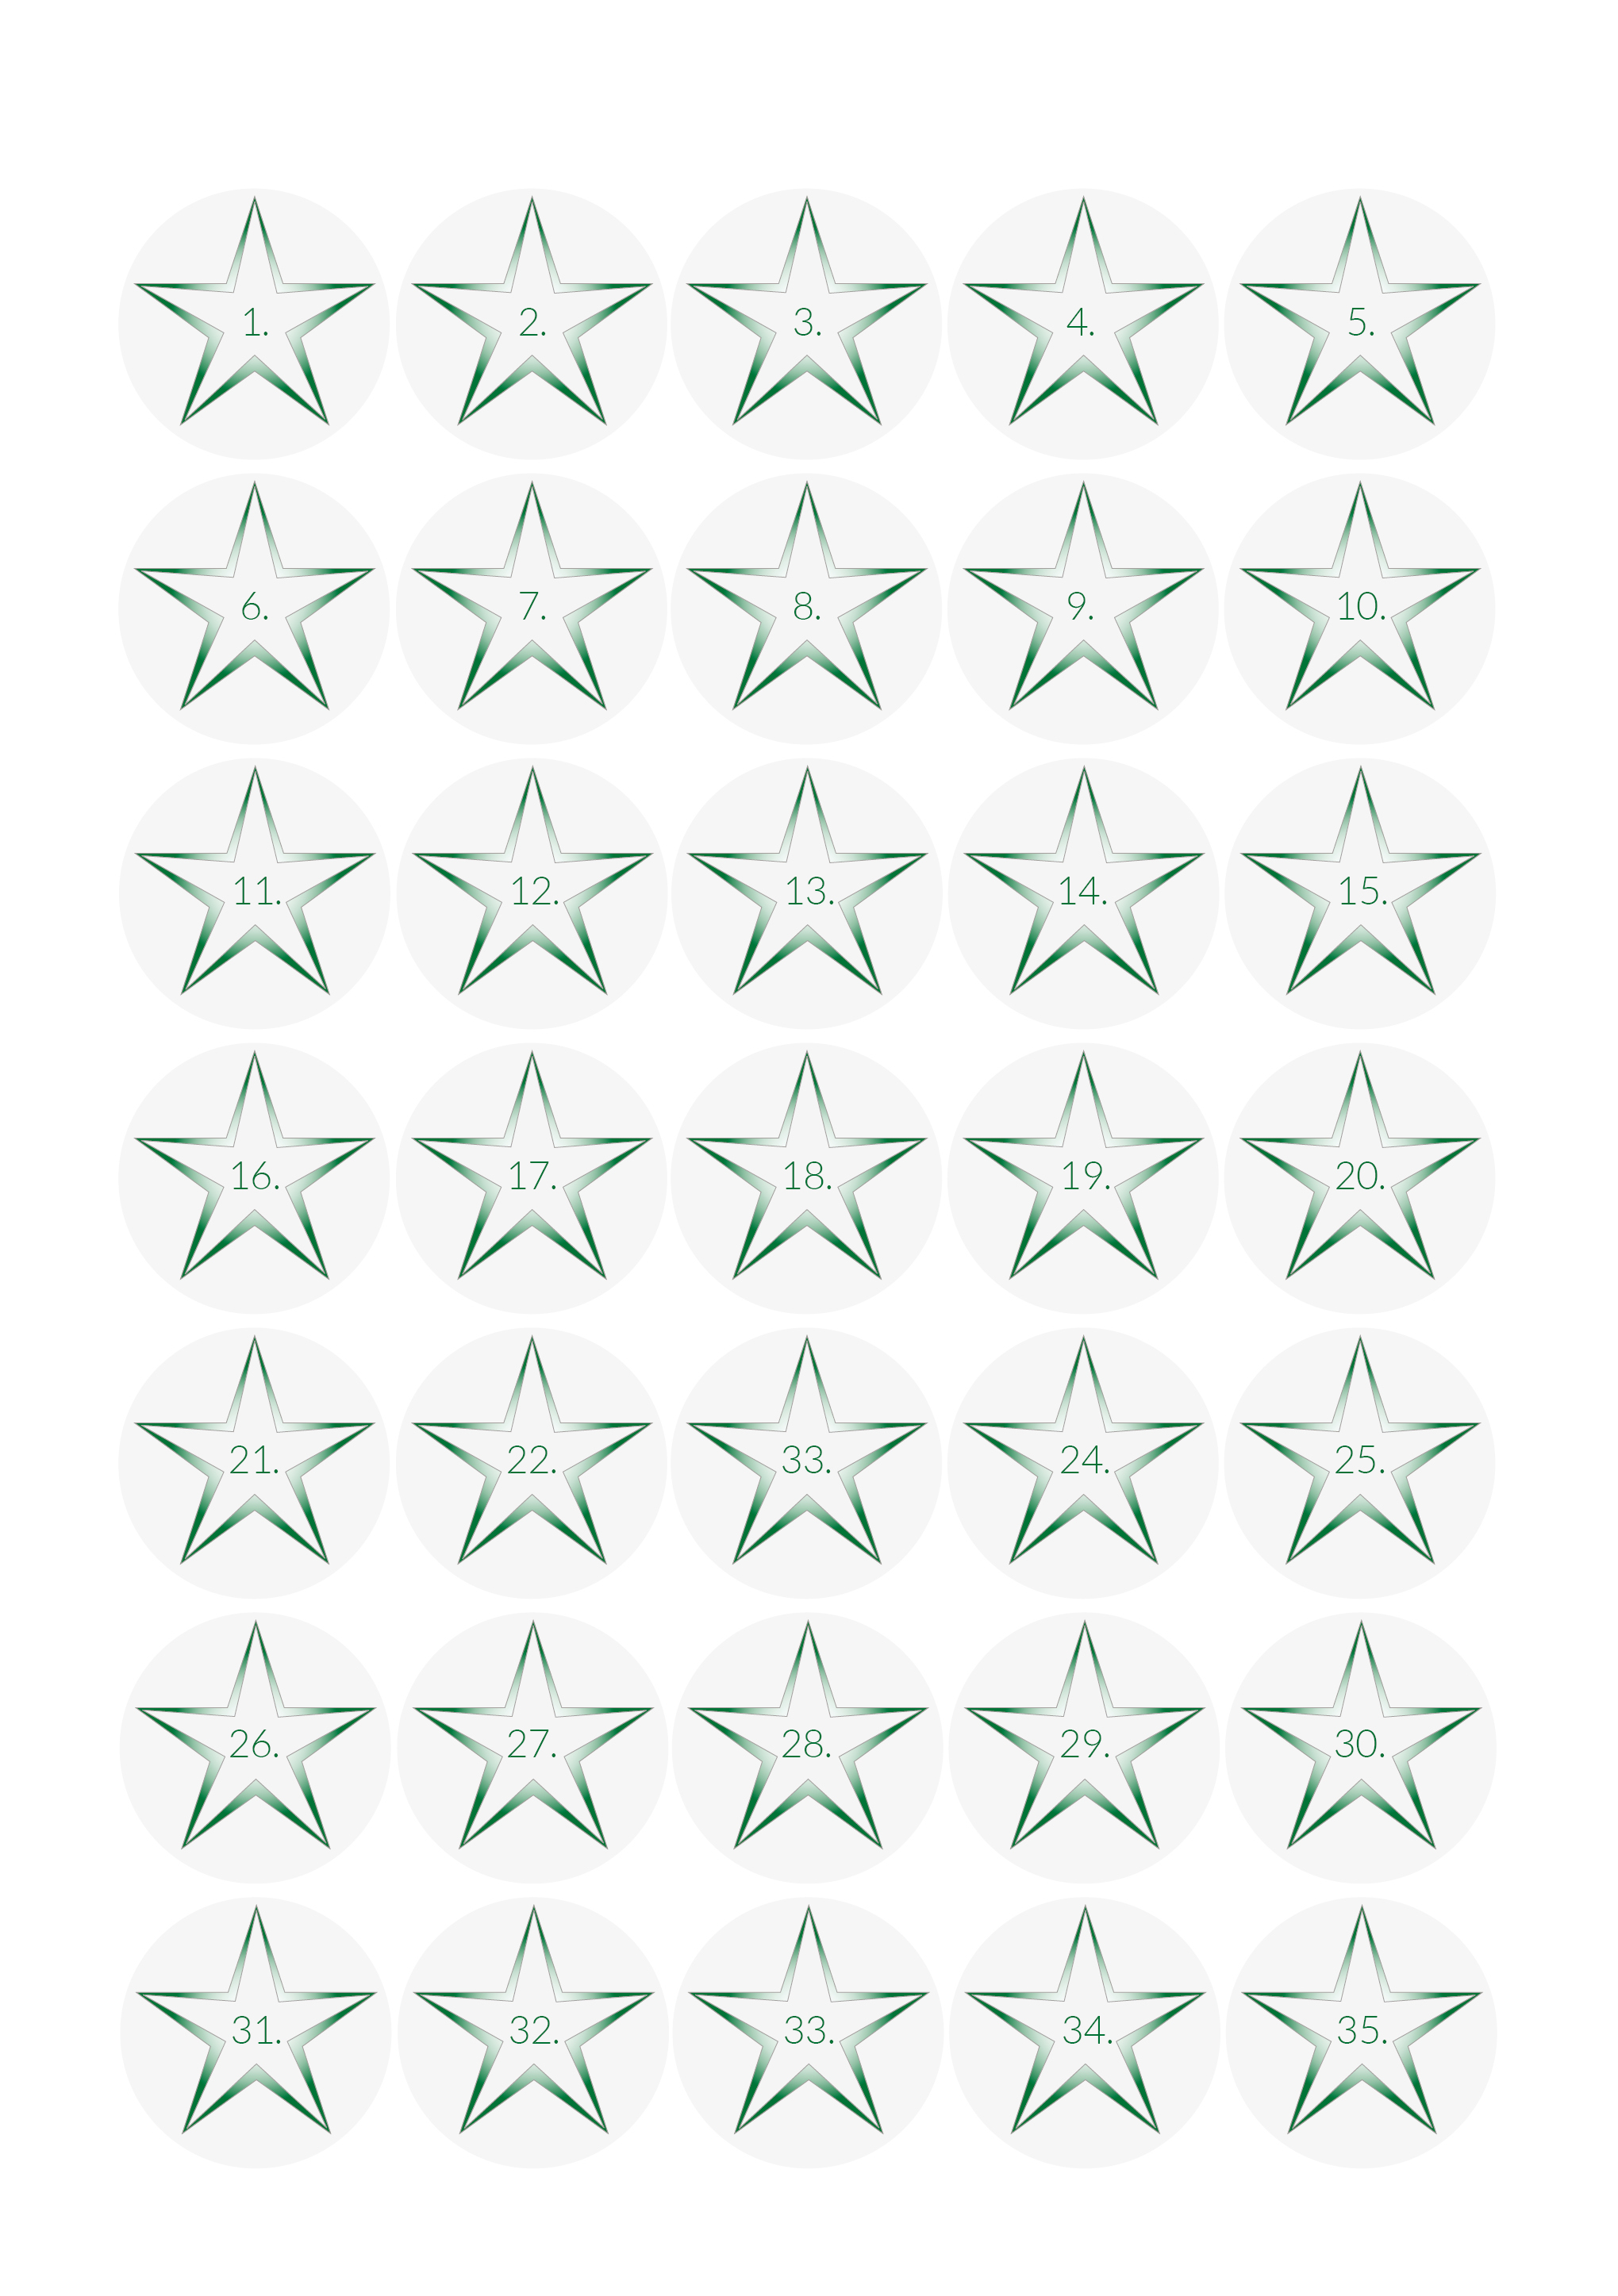 Rewards & Sanctions - Gradient Star Design